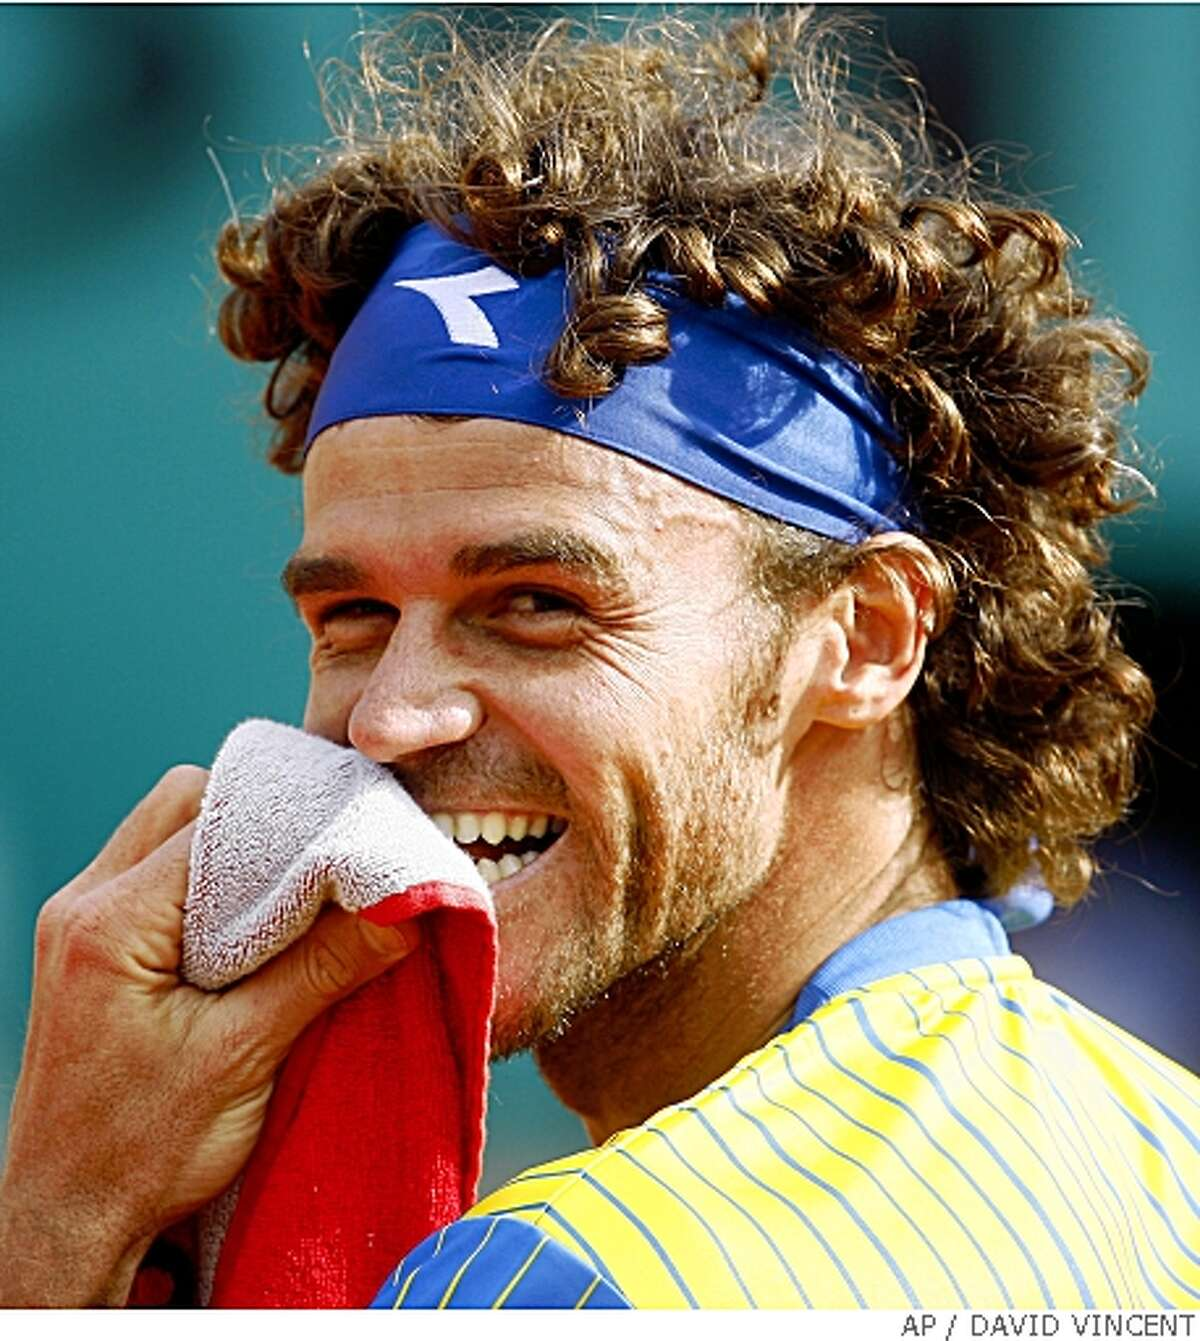 Three time French Open winner Gustavo Kuerten, of Brazil, smiles as he plays France's Paul-Henri Mathieu during their first round match of the French Open tennis tournament, Sunday May 25, 2008 at the Roland Garros stadium in Paris. Kuerten bids farewell to tennis at the site of his biggest triumphs. Mathieu won 6-3, 6-4, 6-2 . (AP Photo/David Vincent)